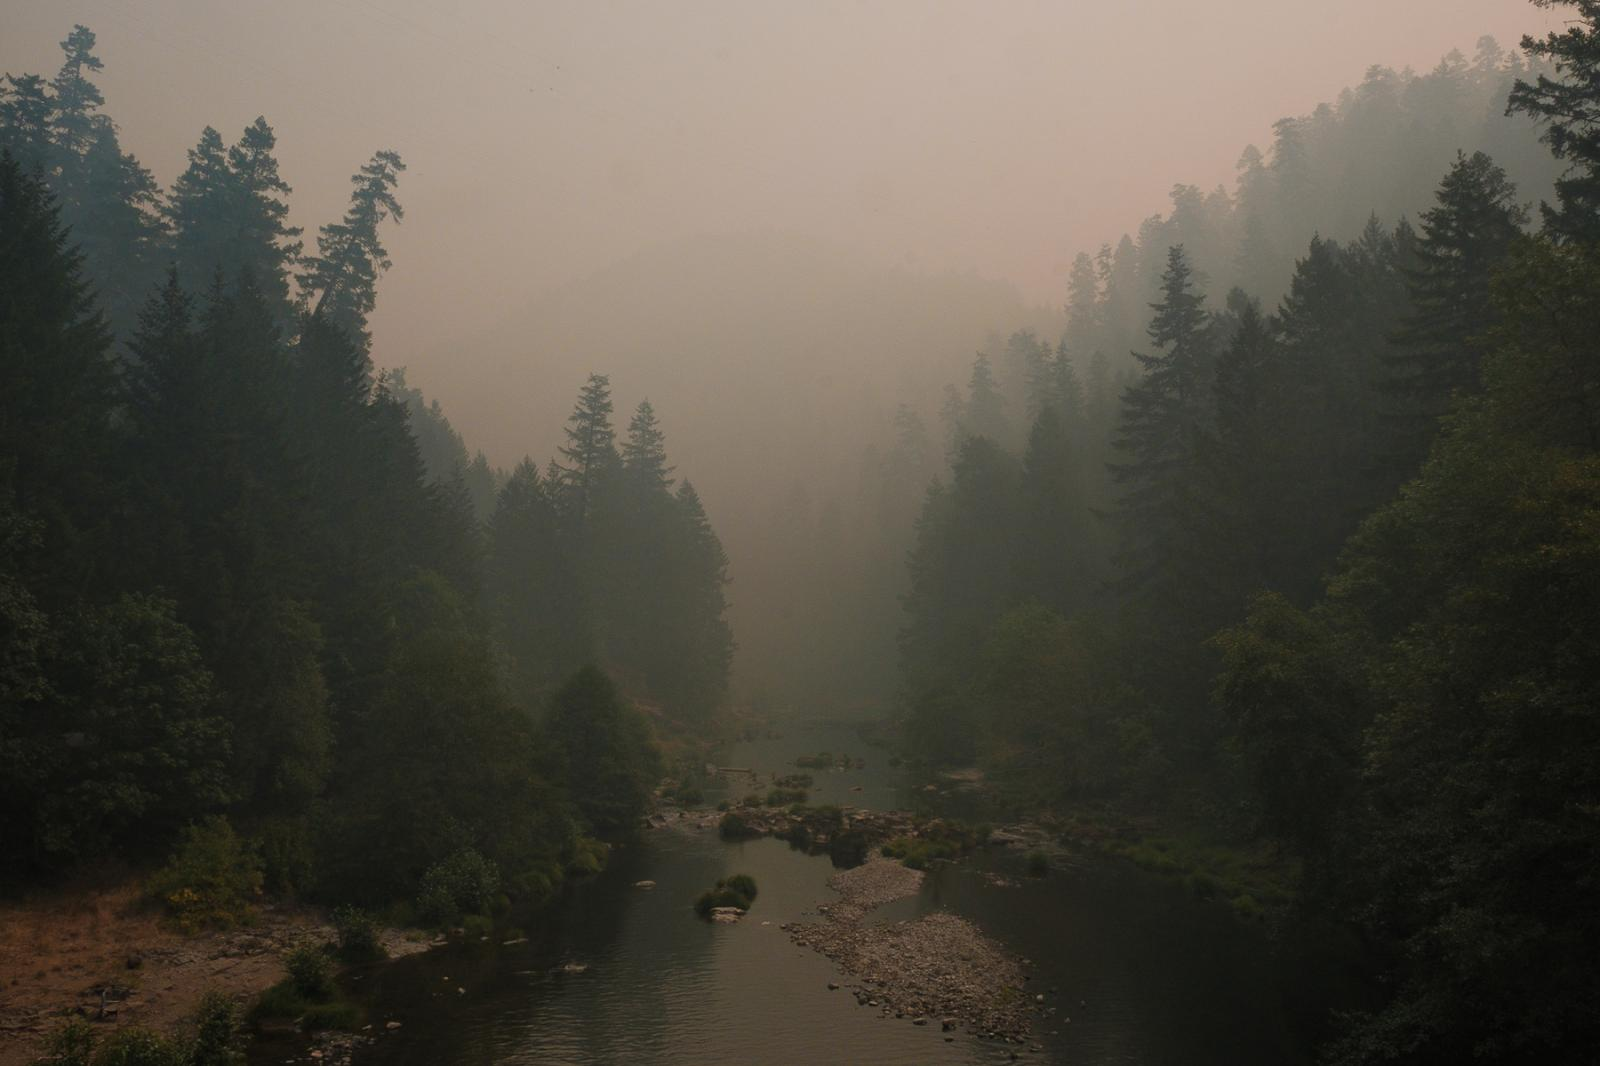 On the edge of the wildfire, someone in Washington state, 2017.